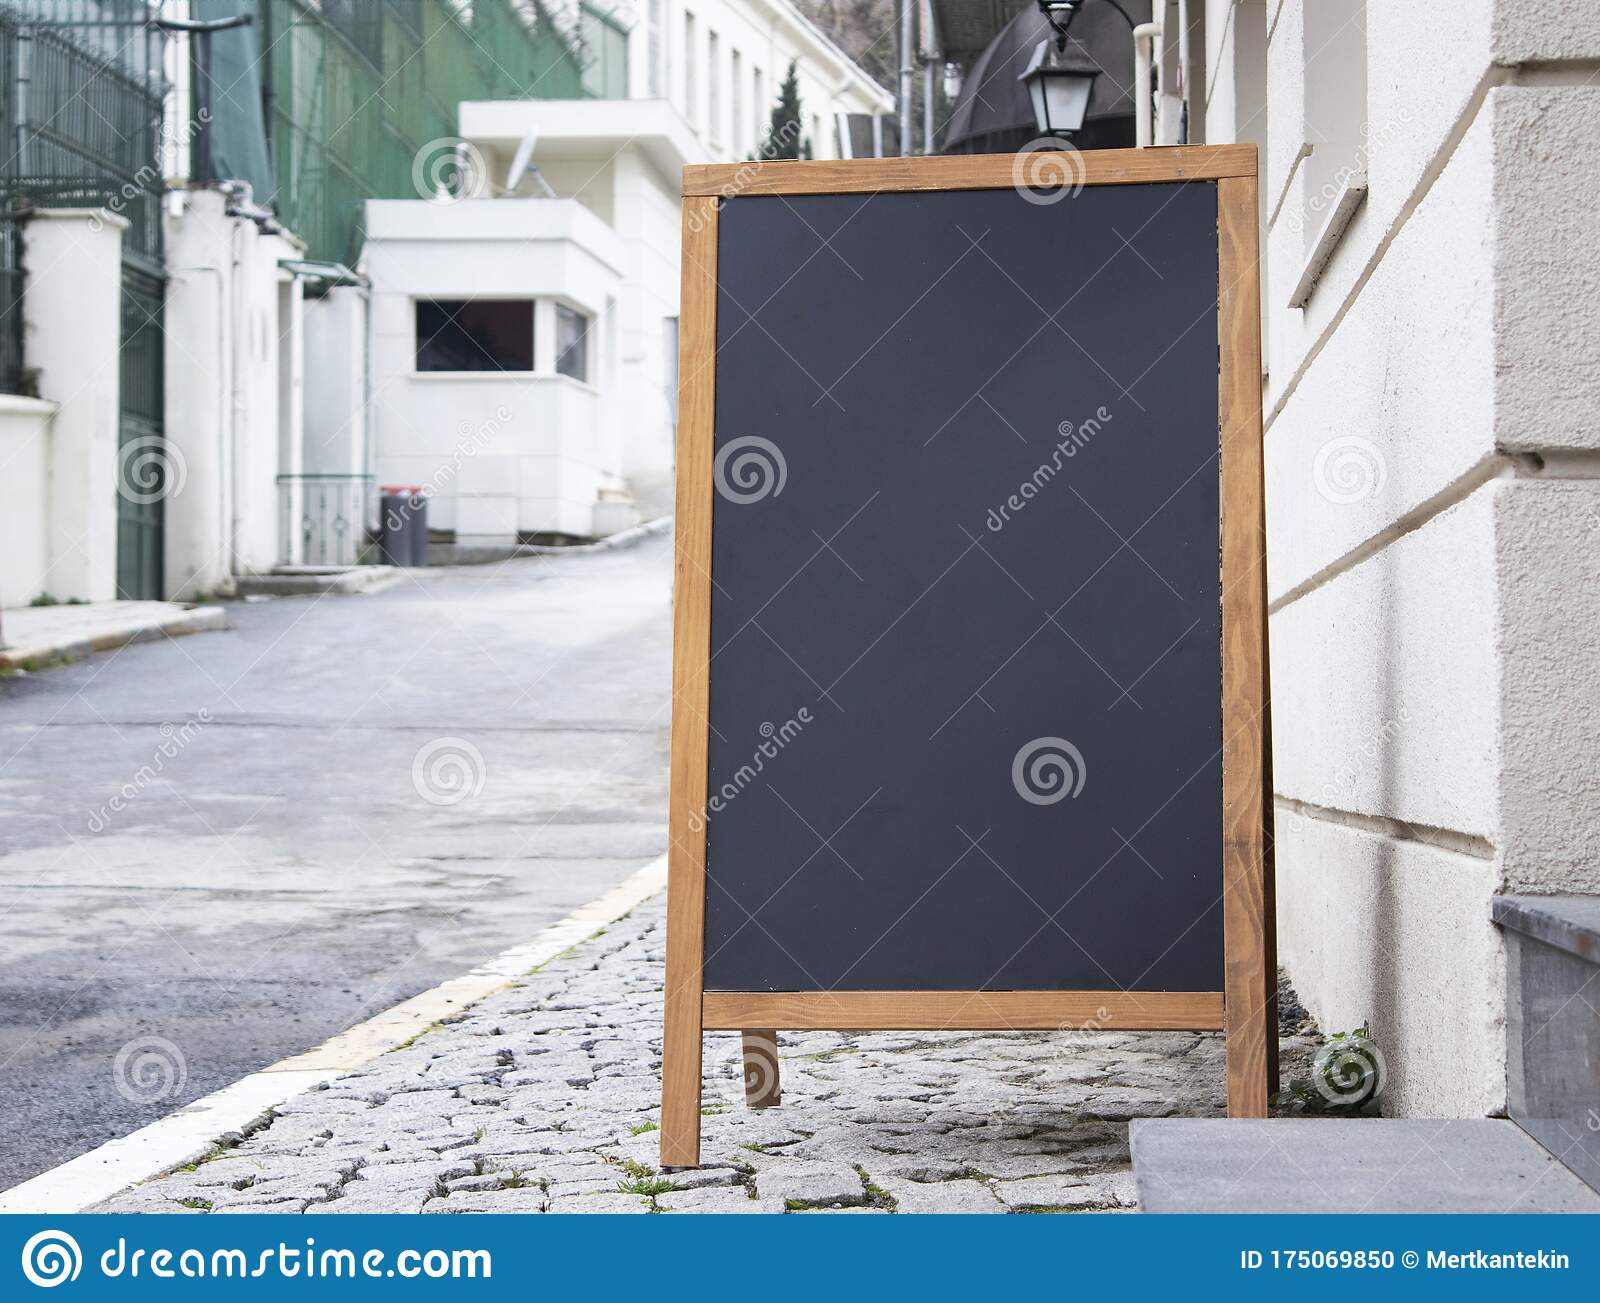 Blank Board Stand Mock Up White Signage Outdoor Restaurant Menu Template Stock Photo Image Of Caucasian Marketing 175069850